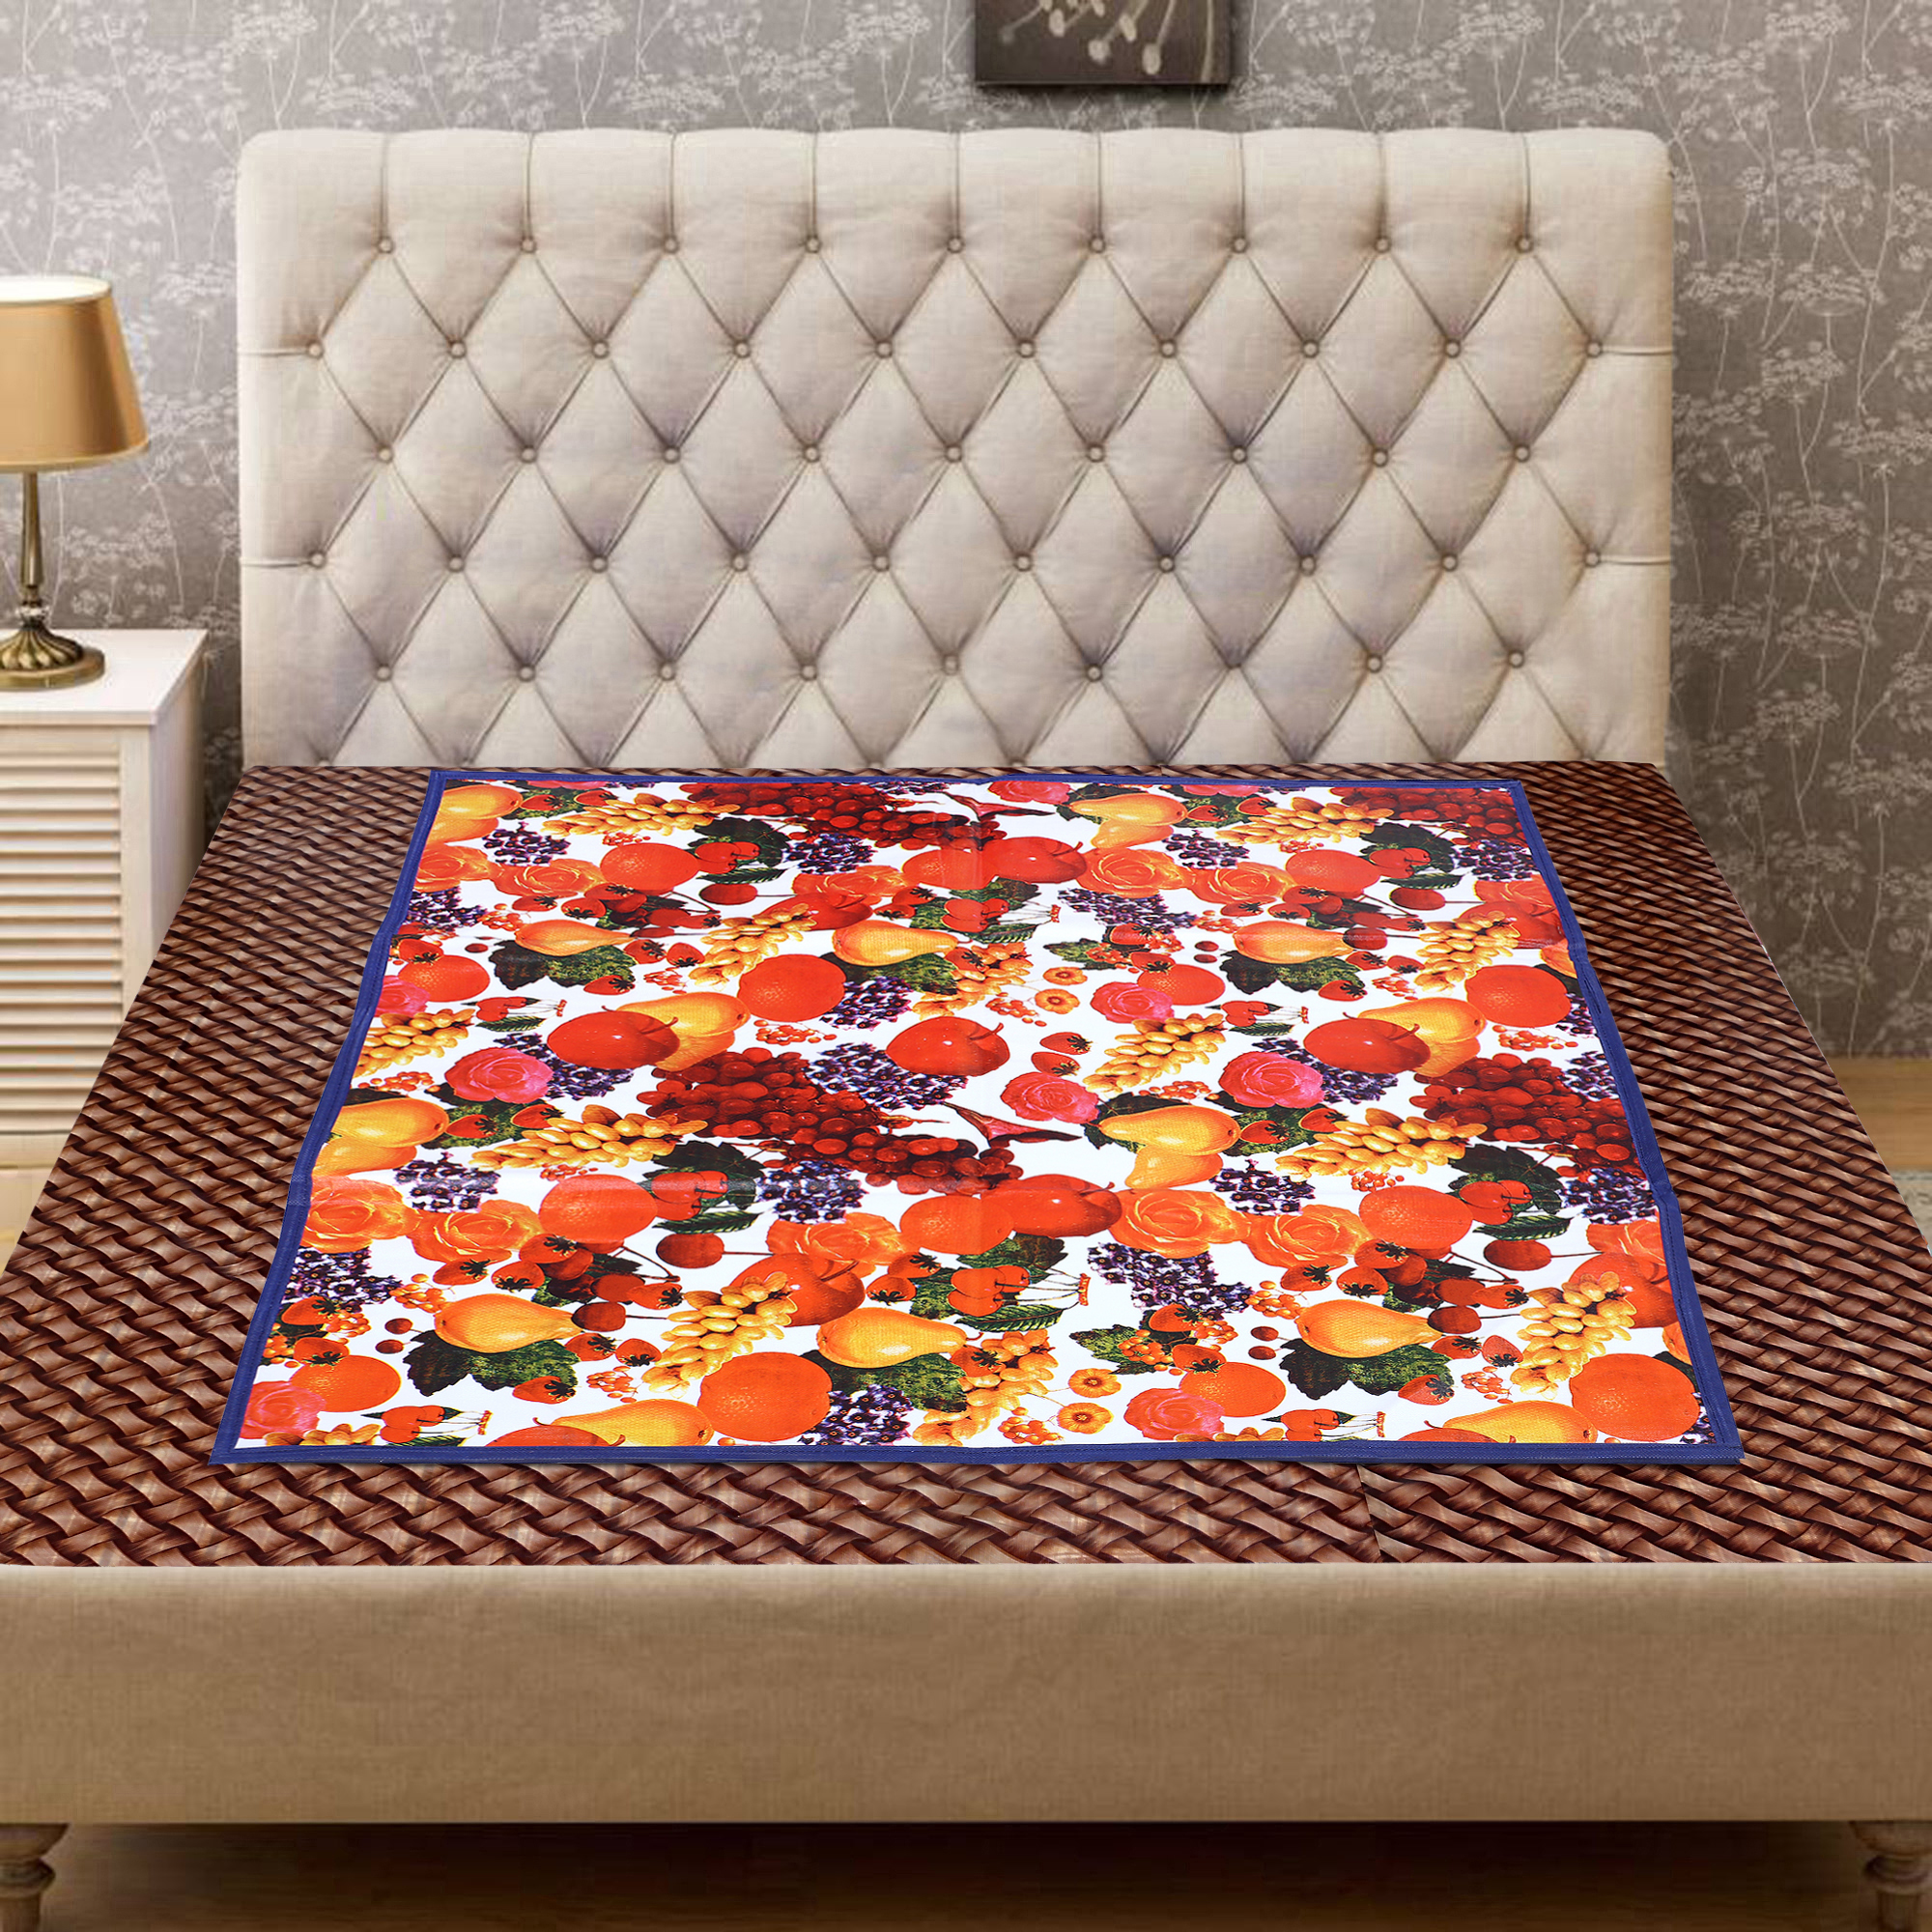 Kuber Industries Fruits Design PVC Reversible Food Mat Mattress Protector Bed Server (Red & Blue)